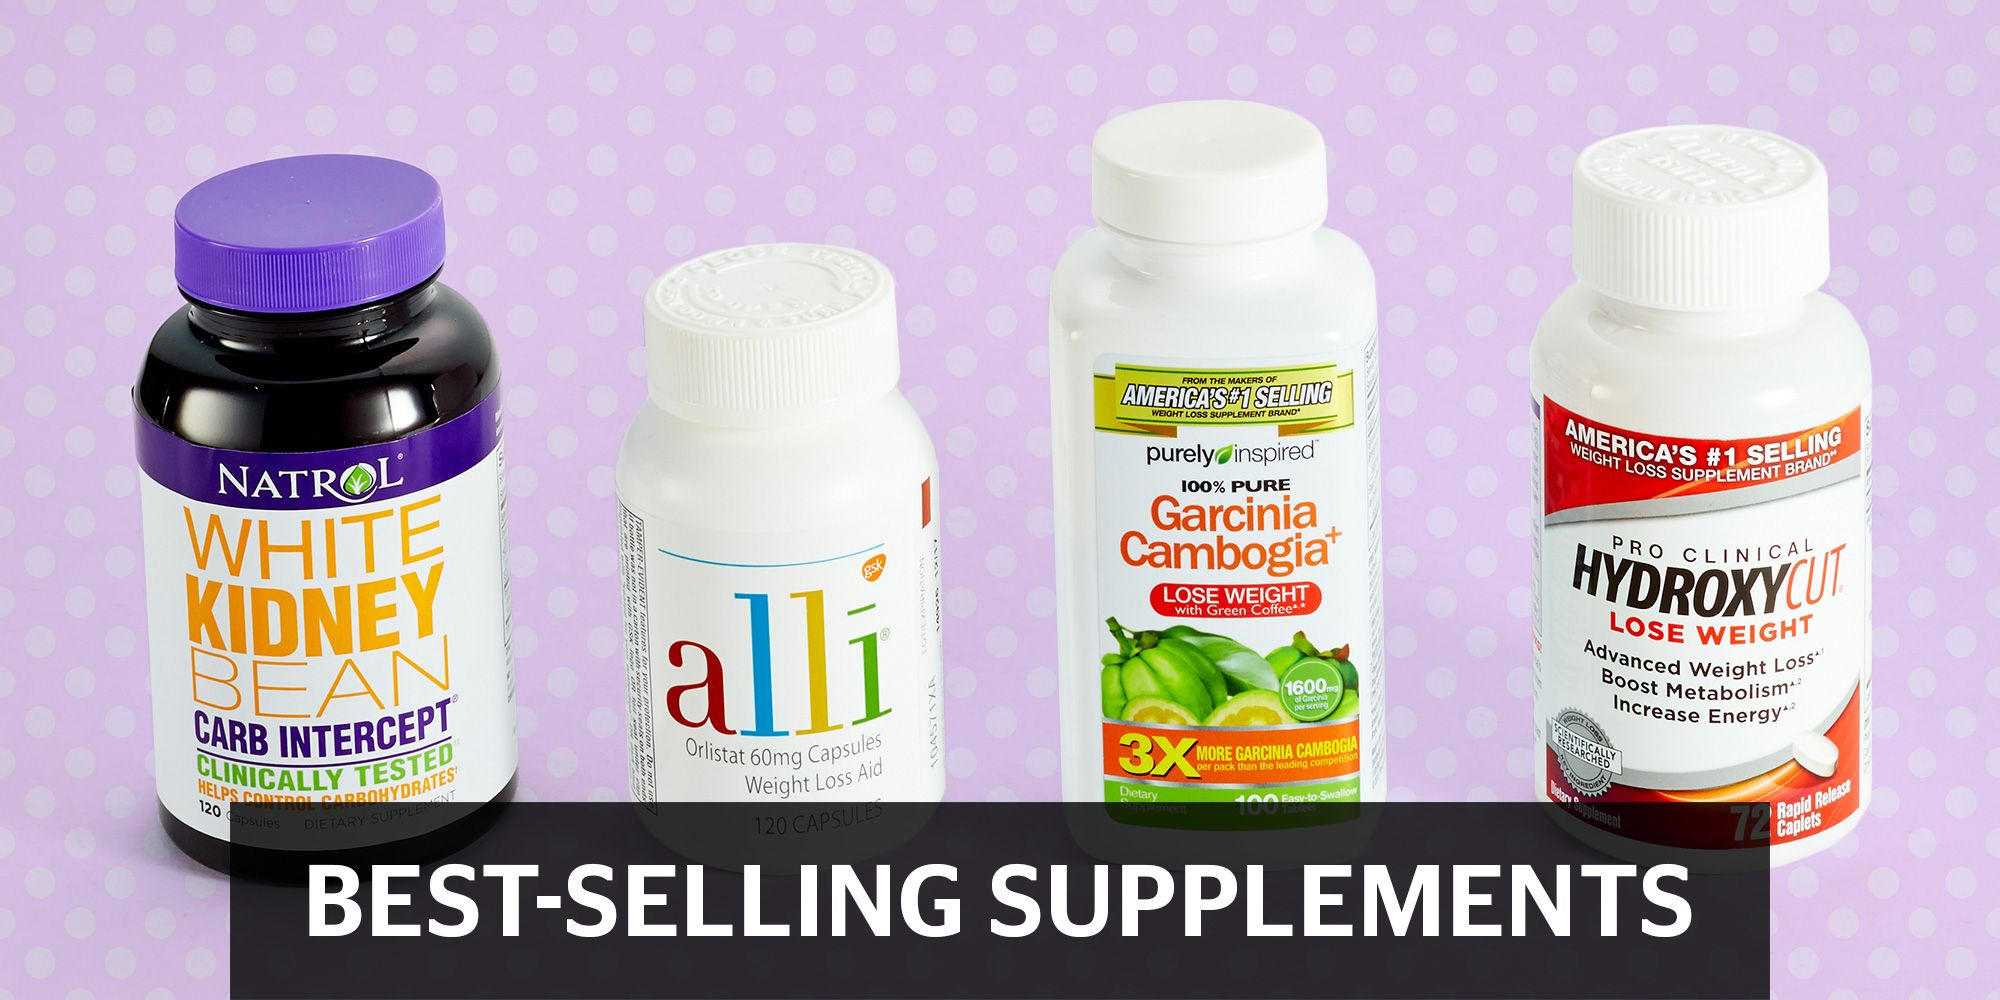 Best Selling Weight Loss Supplements - 4 Women Try 4 Diet Supplements